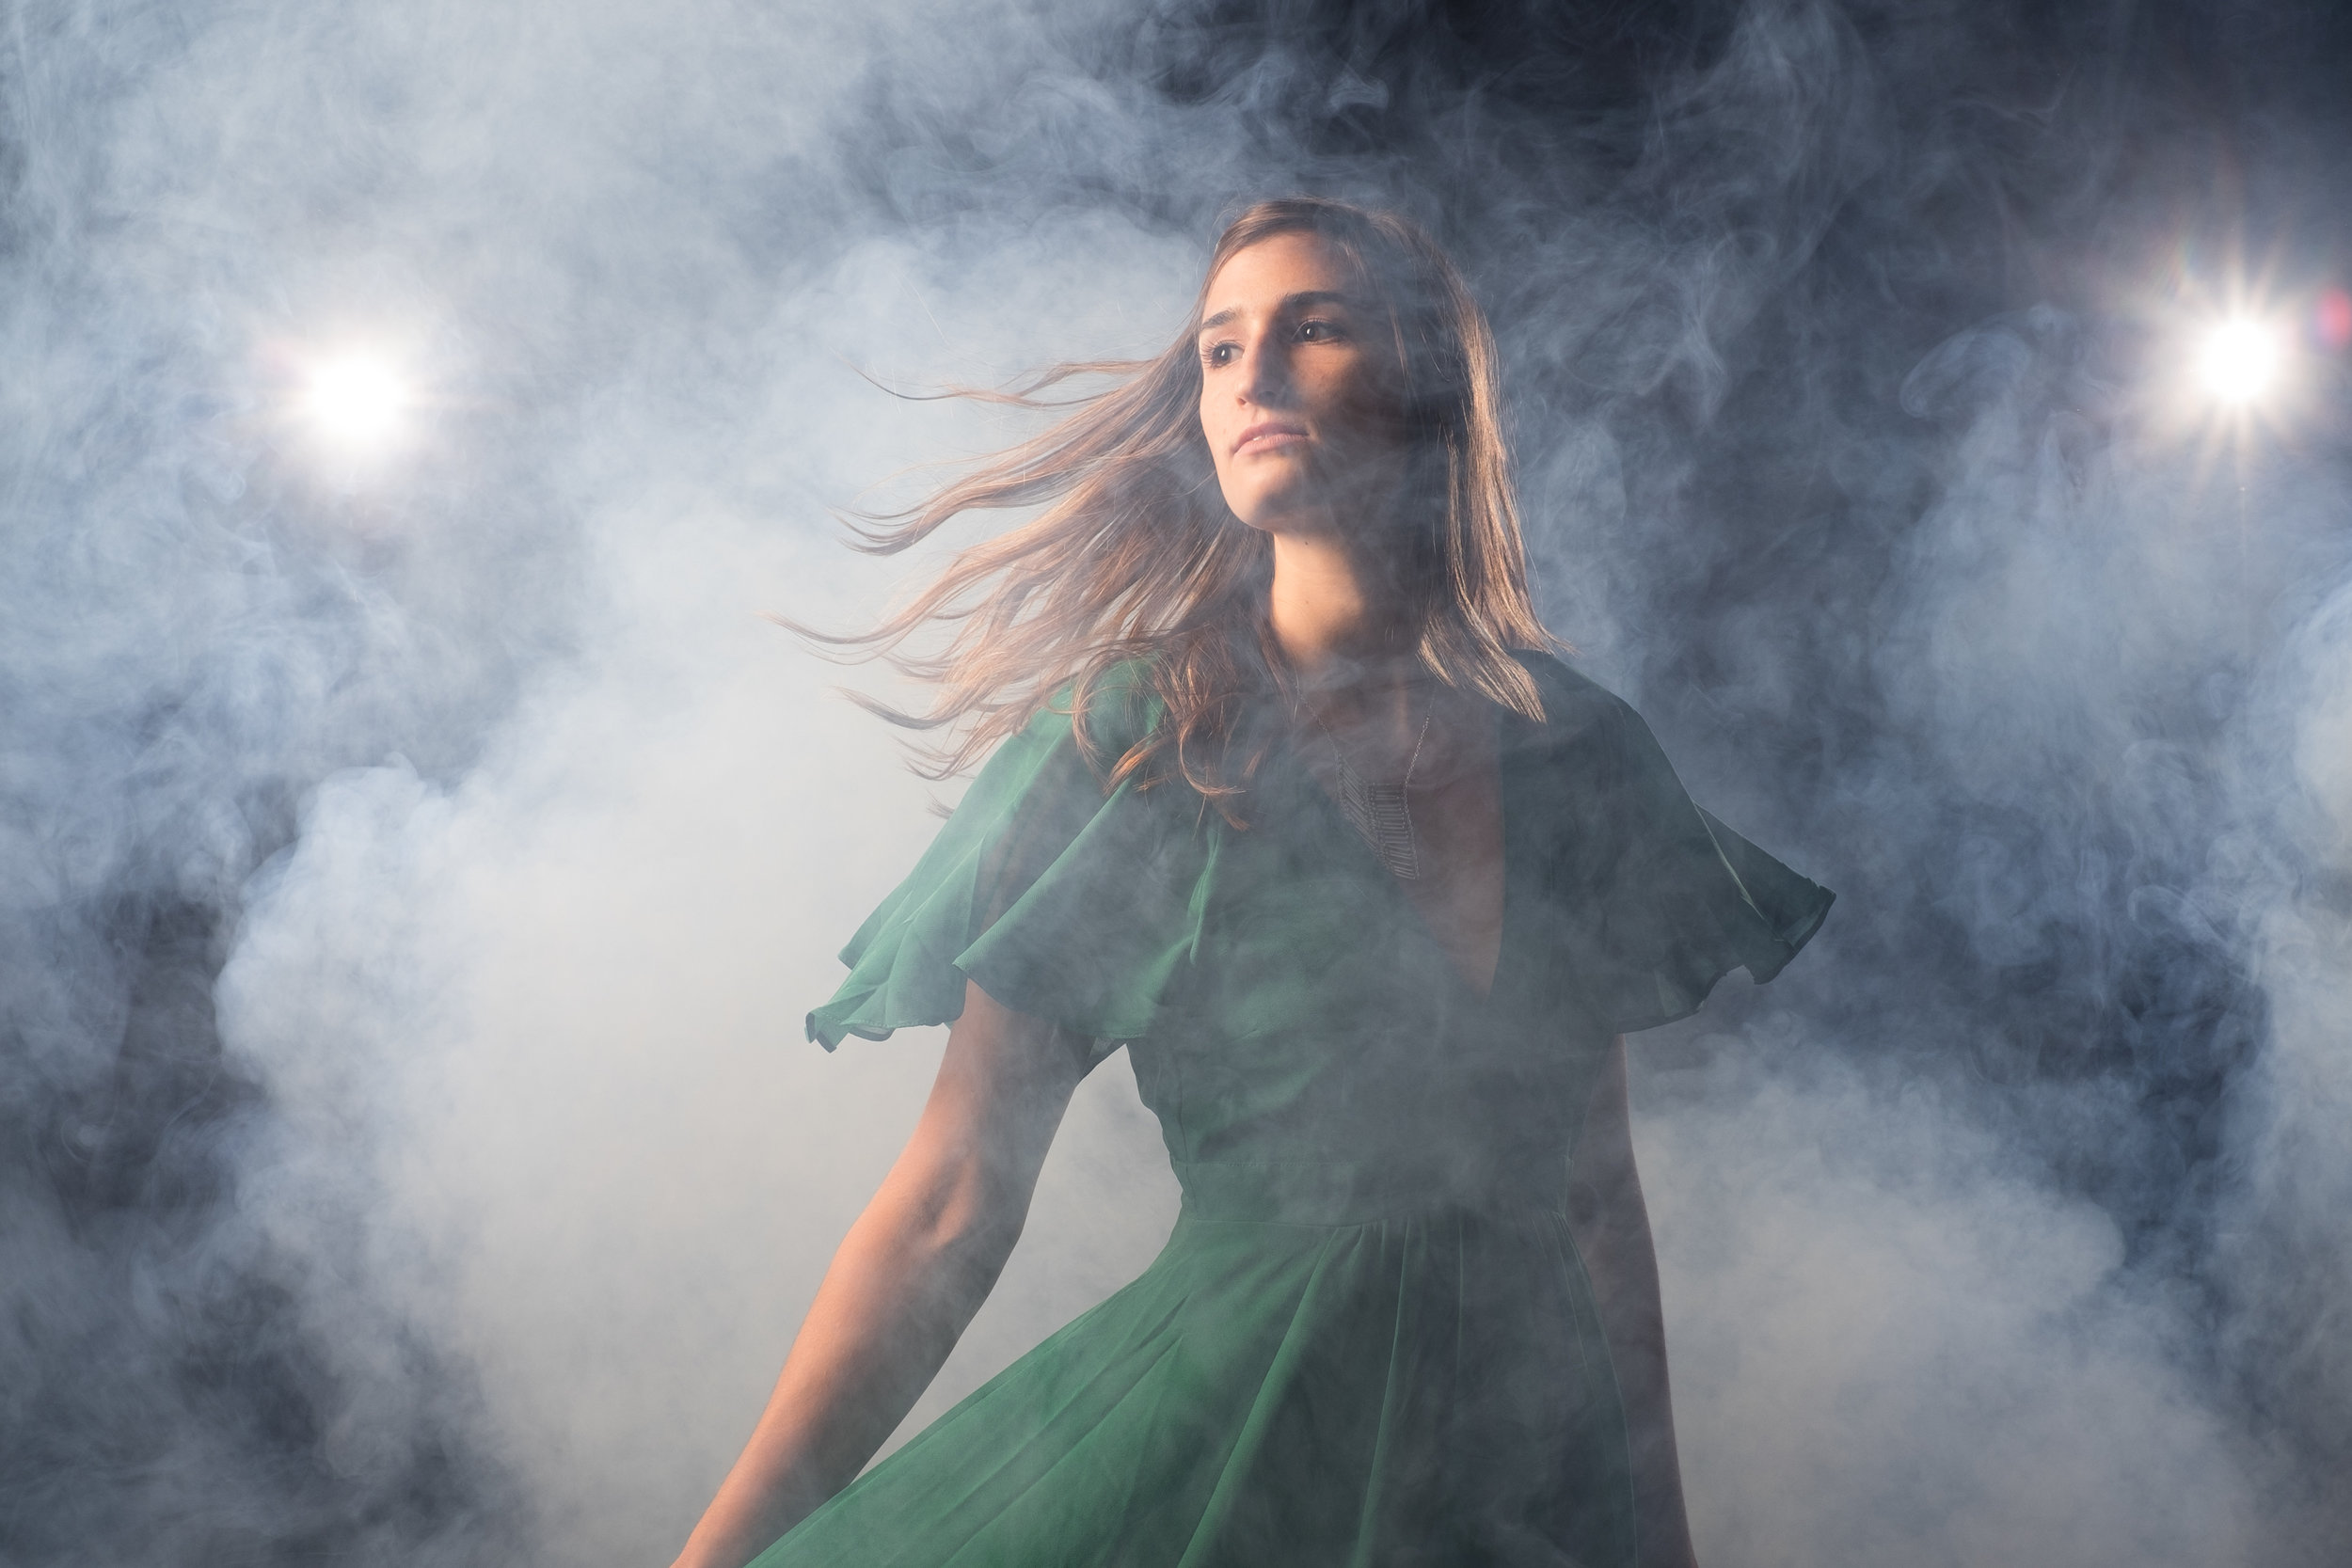 I'm not going to use this for my portfolio, but at least I now know exactly how to work with smoke.